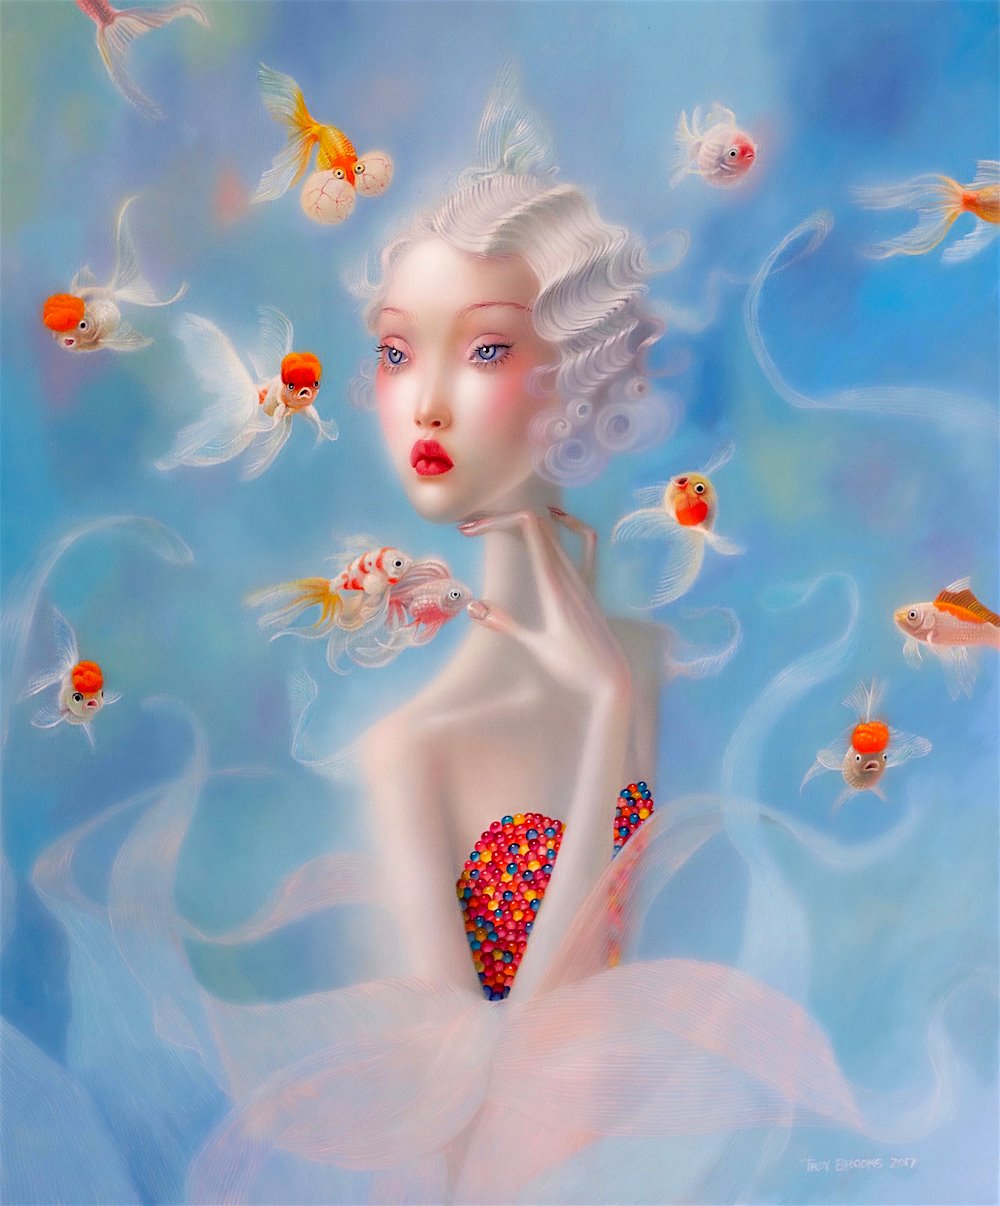 Troy Brooks | Pintor pop-surrealismo